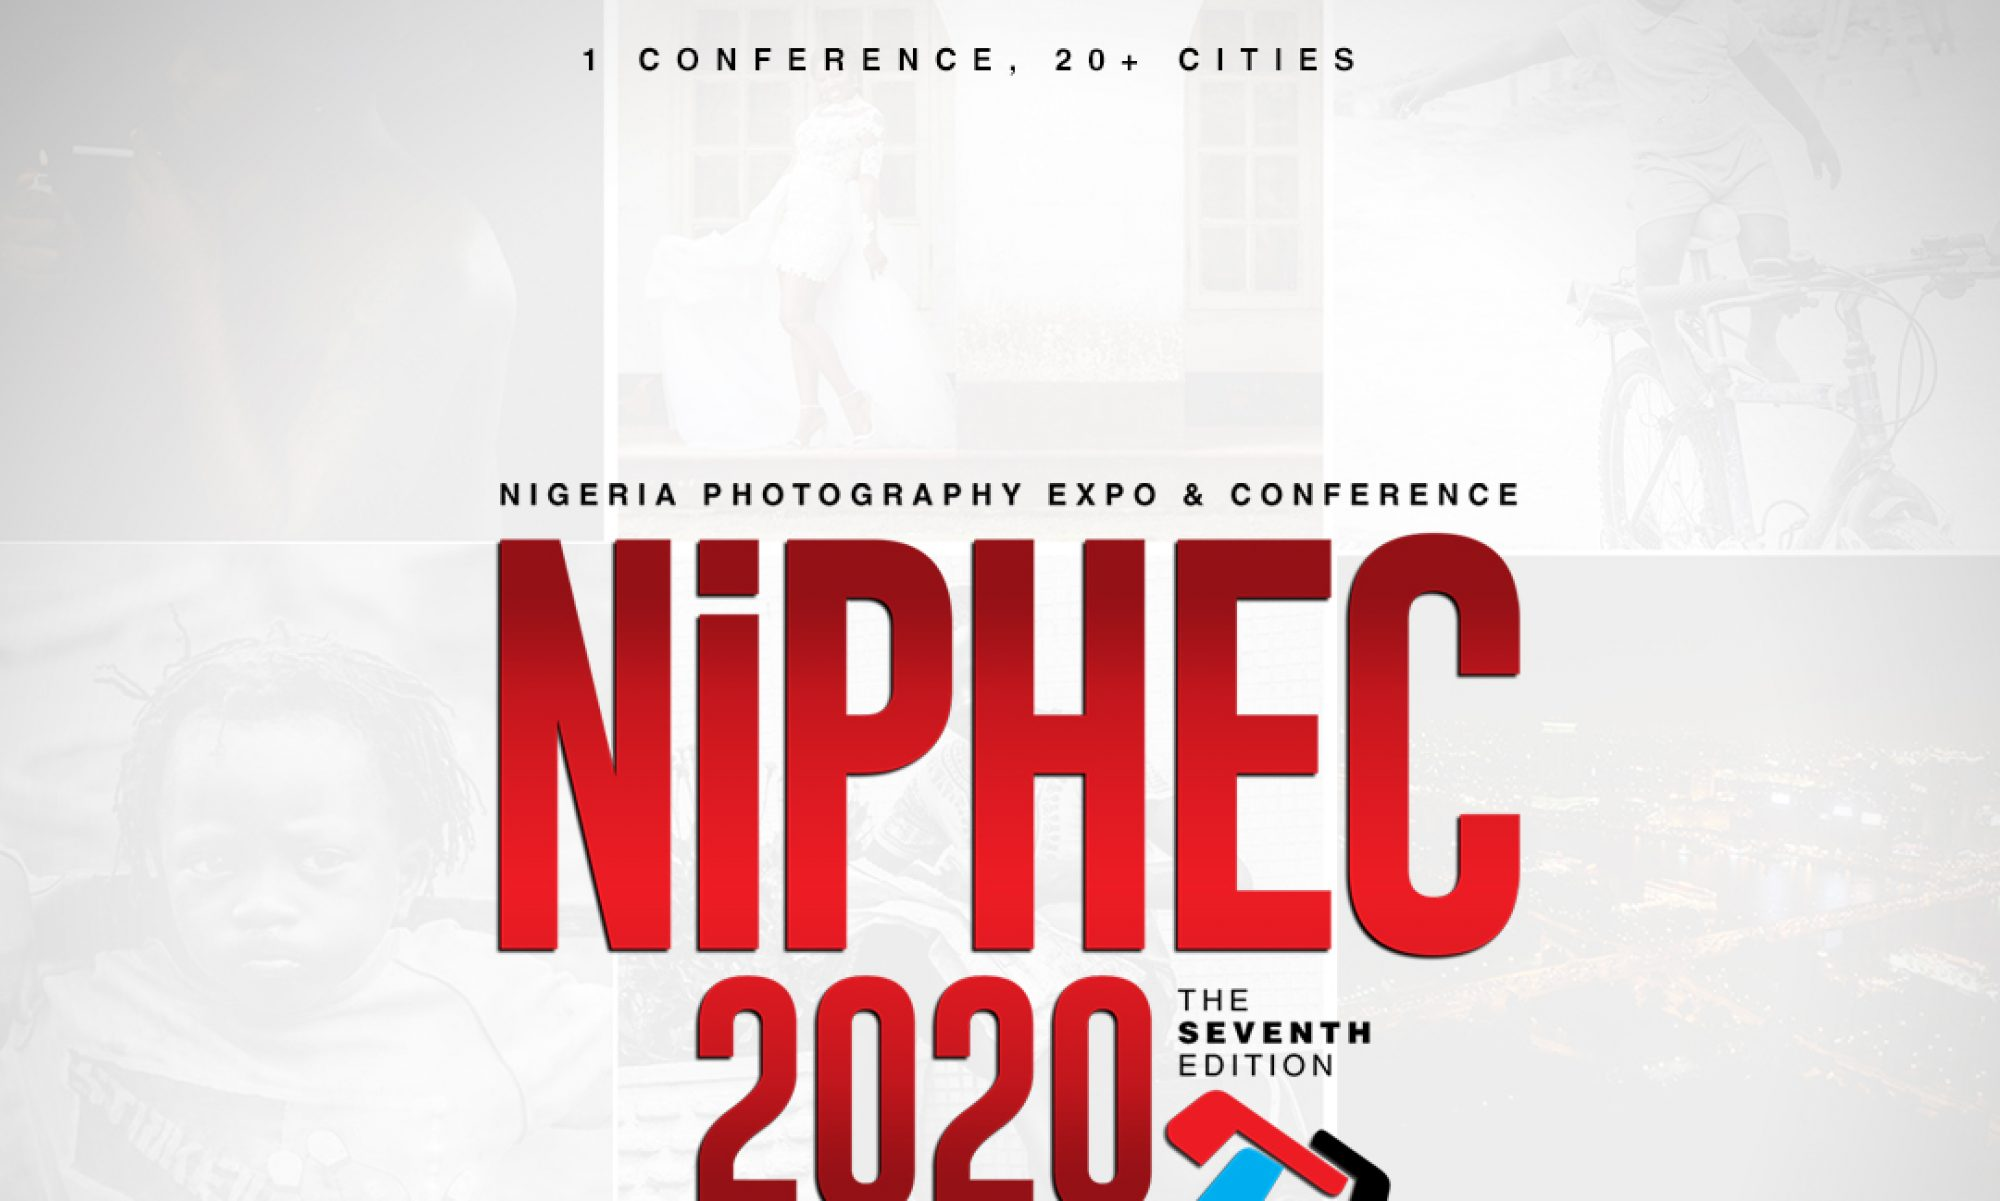 Nigeria Photography Expo & Conference 2020